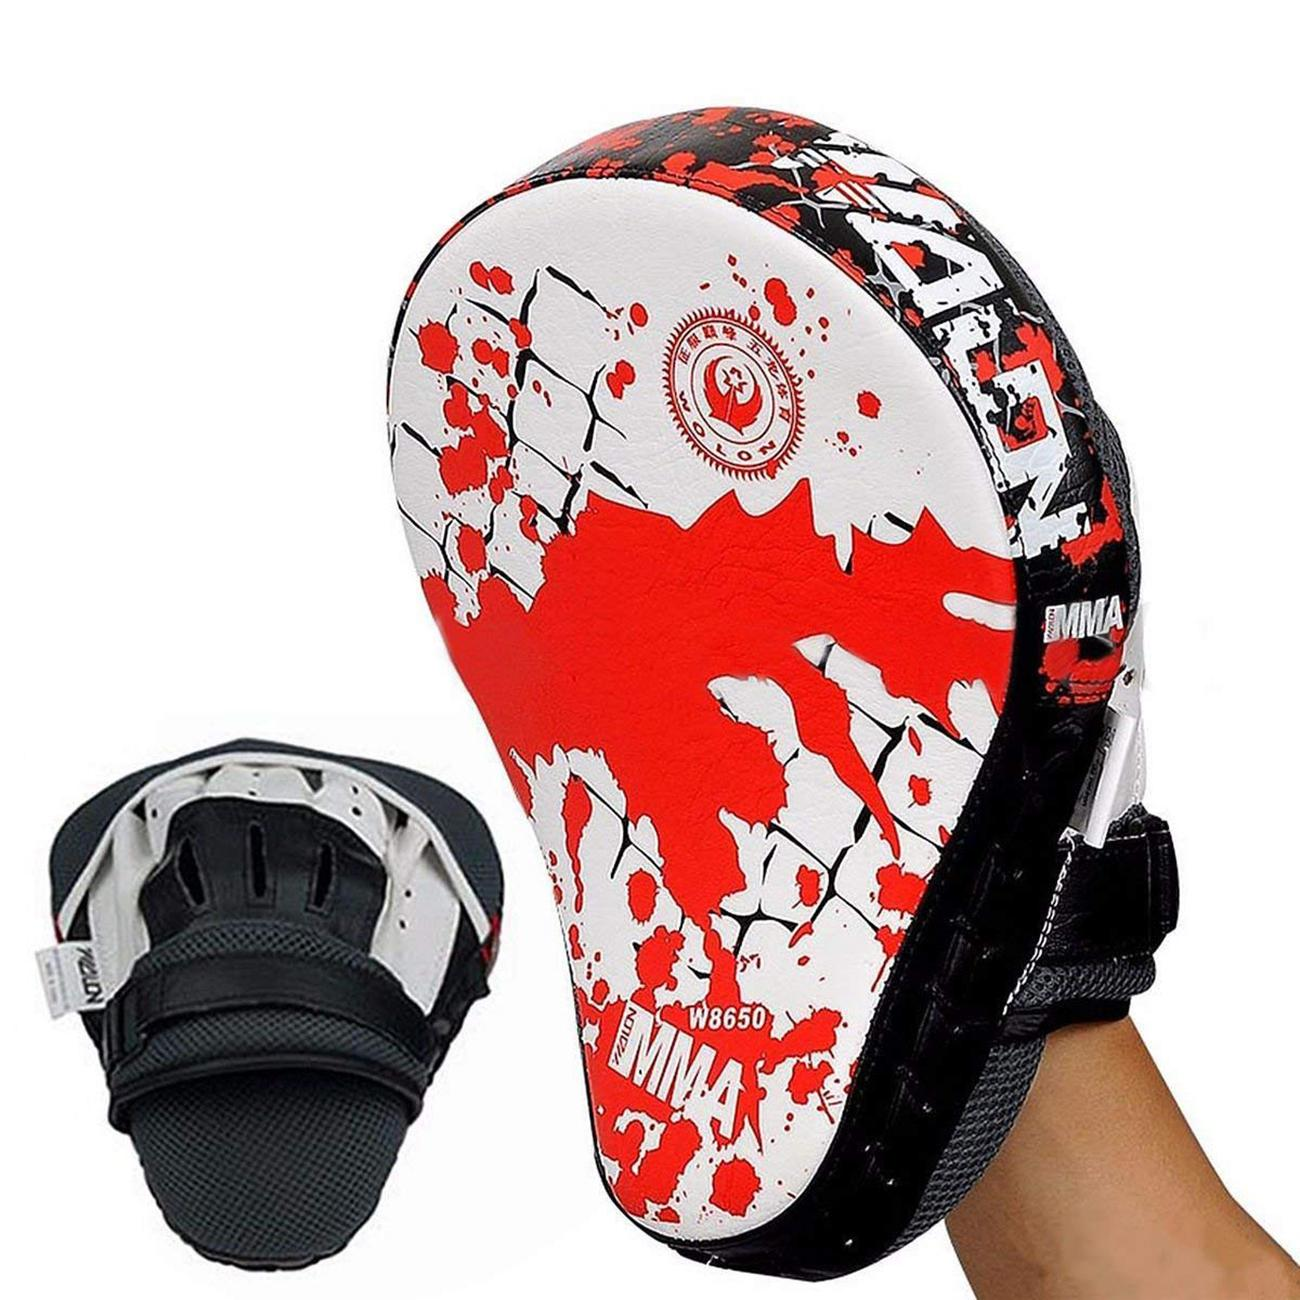 Boxing Kick Hand Target Punch Pad Glove Focus MMA Muay Thai Training PU Foam USA